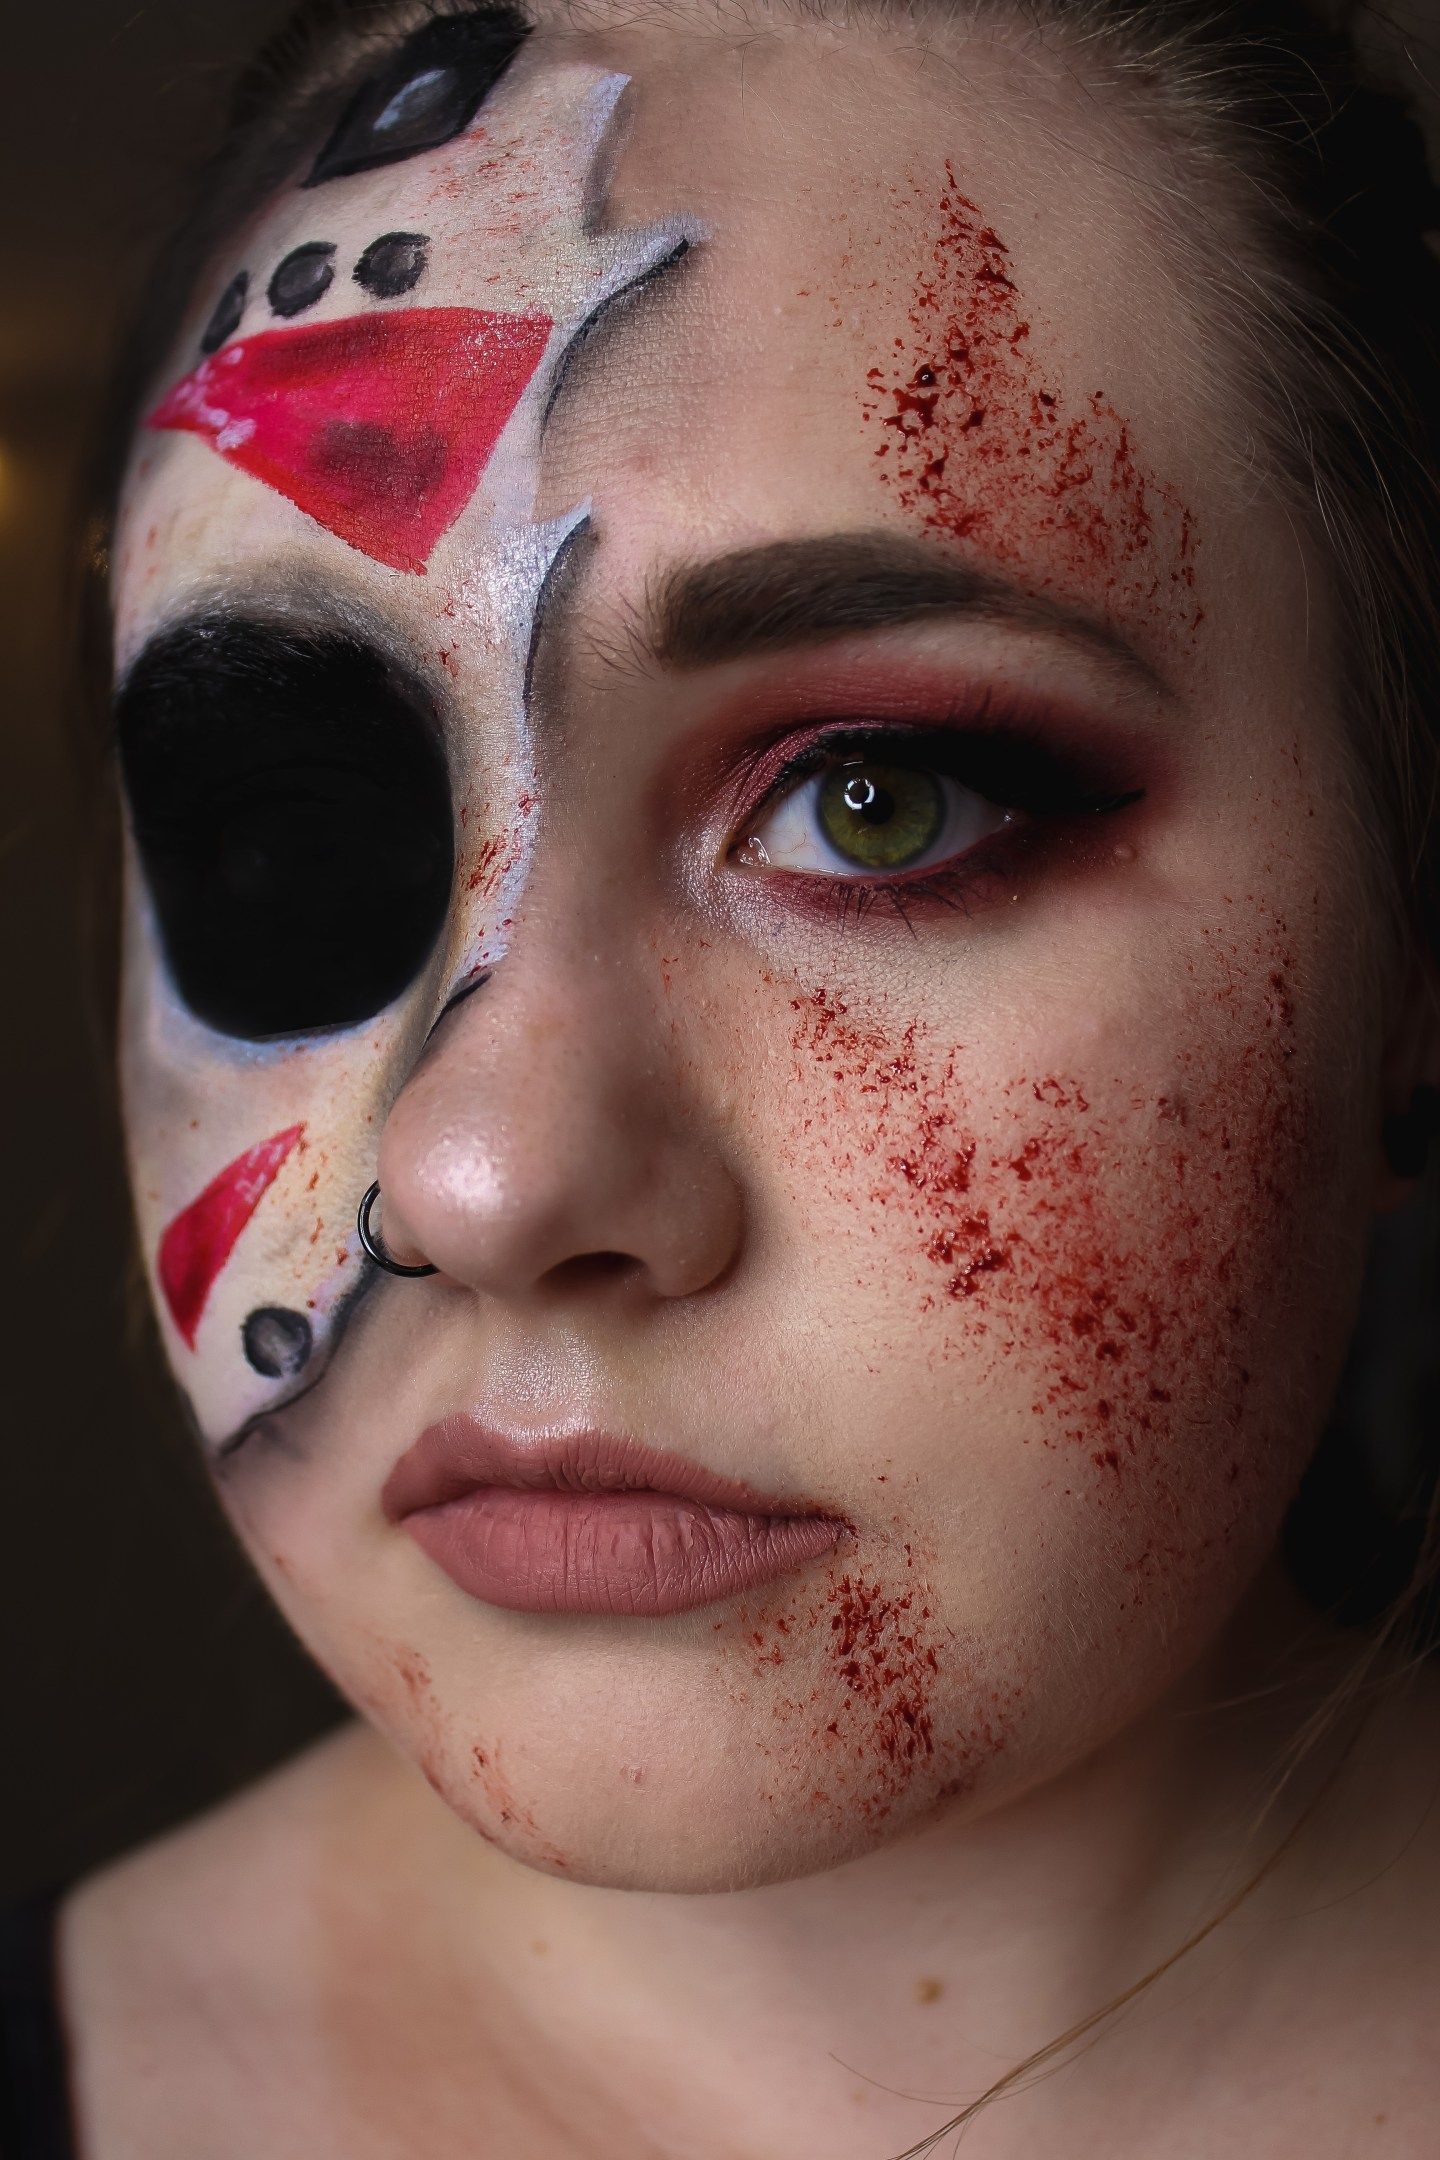 You're Doomed! Jason Voorhees from Friday the 13th Makeup Look 7